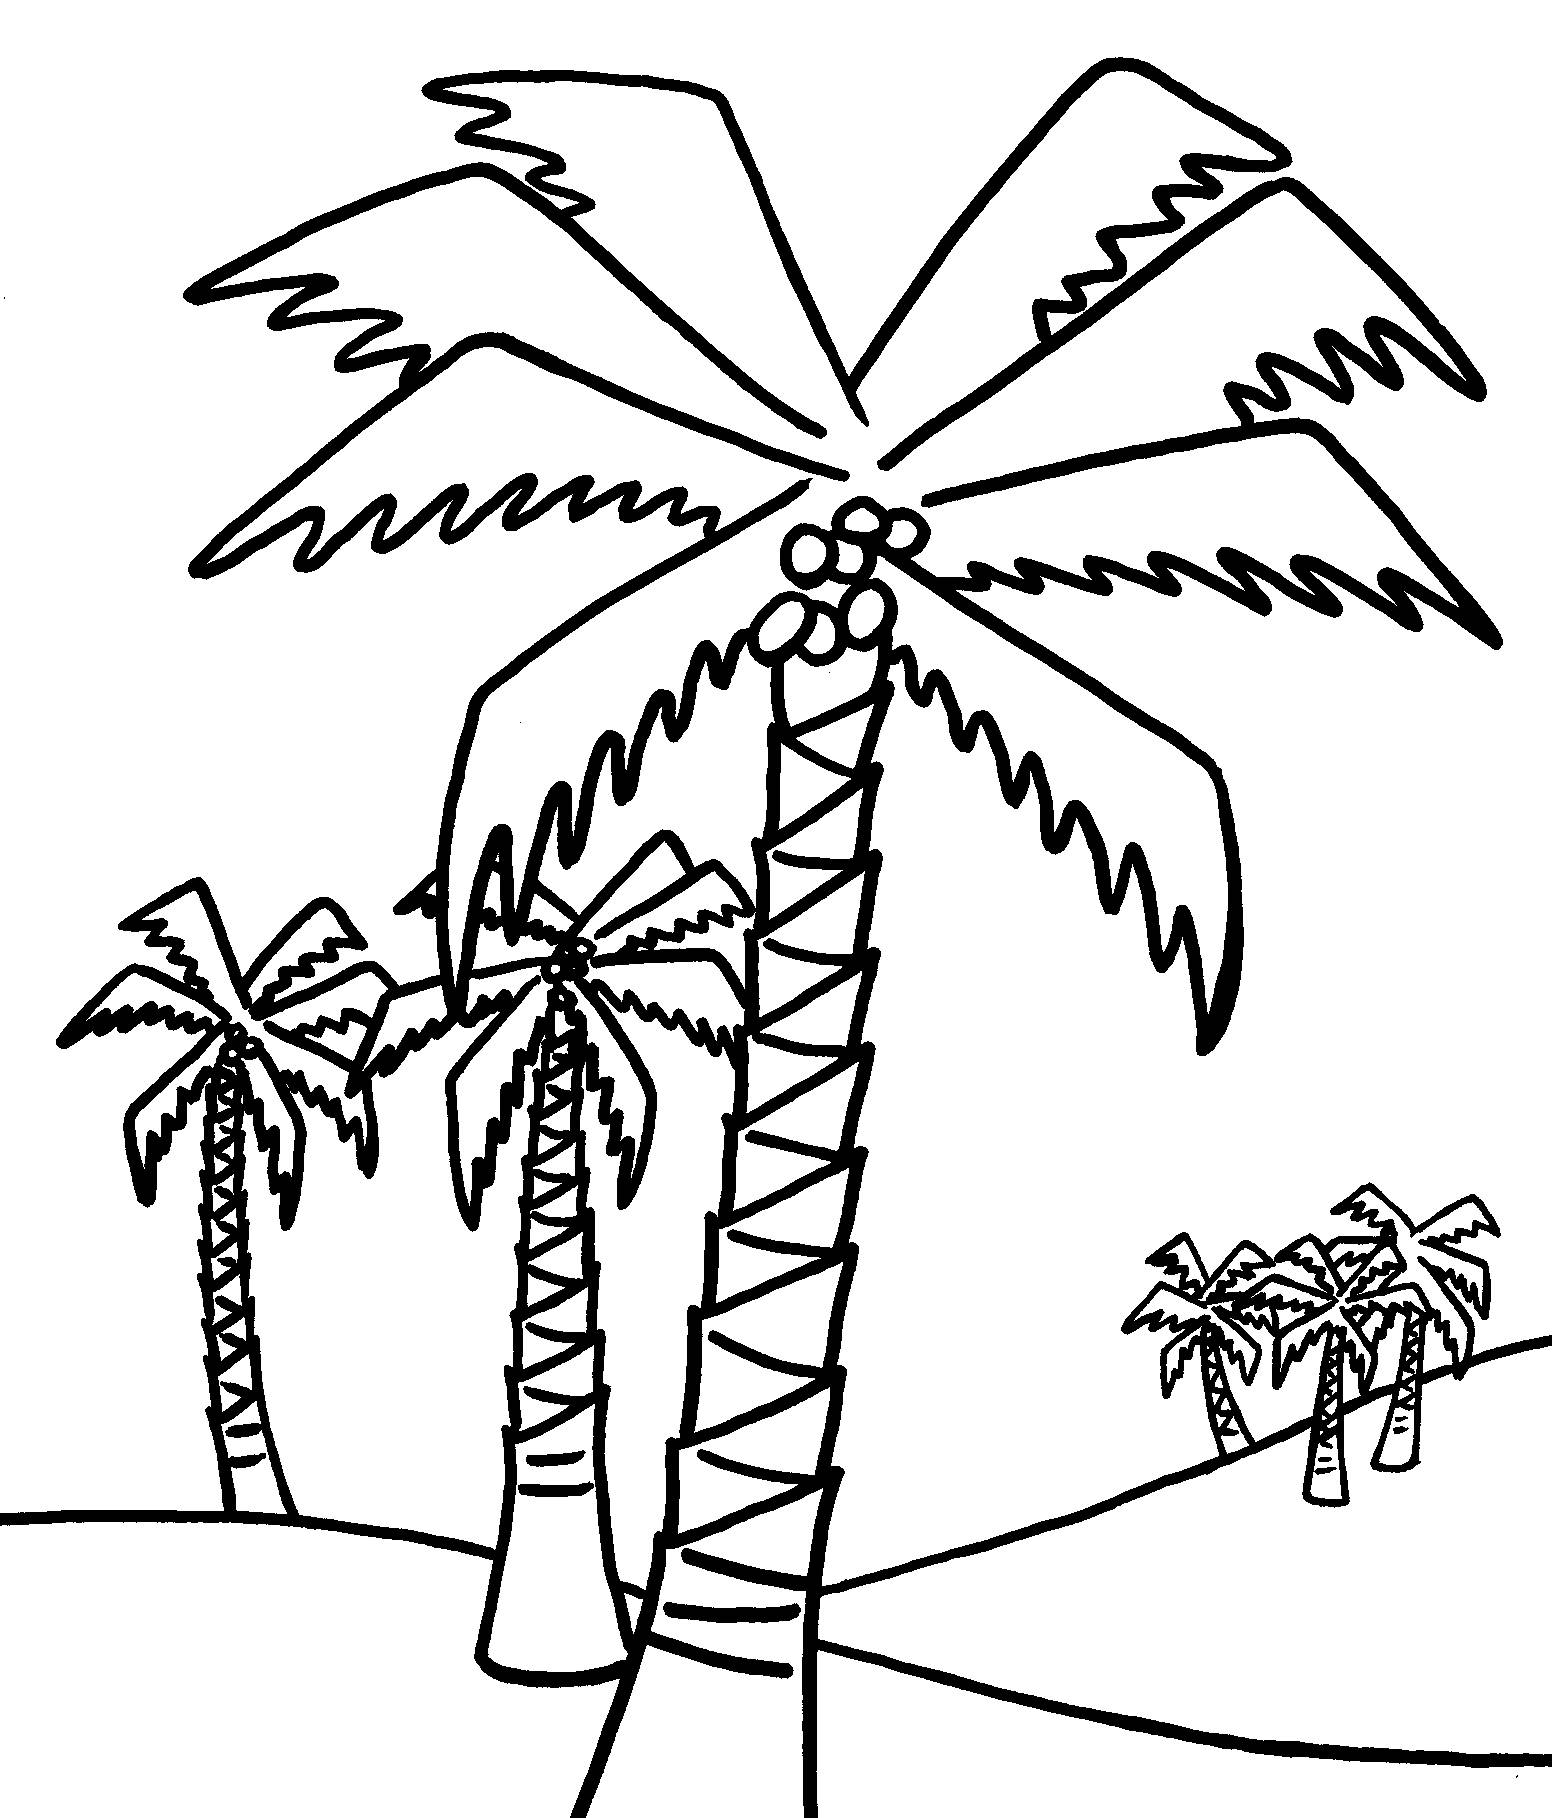 coloring trees free printable tree coloring pages for kids coloring trees 1 4